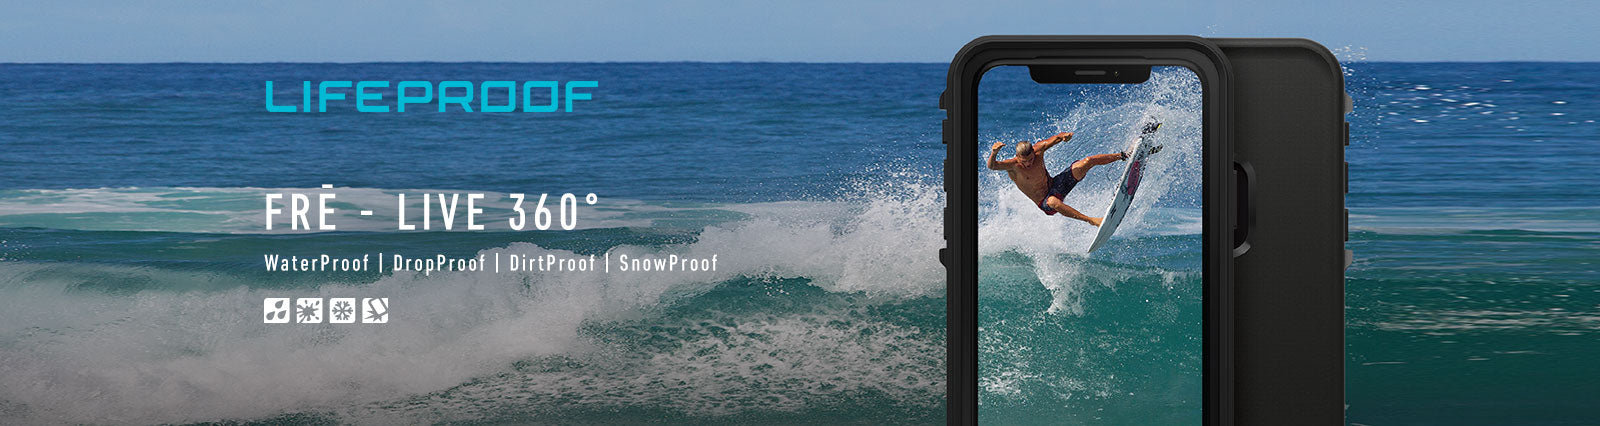 Buy Lifeproof Fre Australia Stock and Pay with Afterpay. Get genuine Fre series for iPhone x 8 7 6s, ipad pro mini and google pixel with free shipping